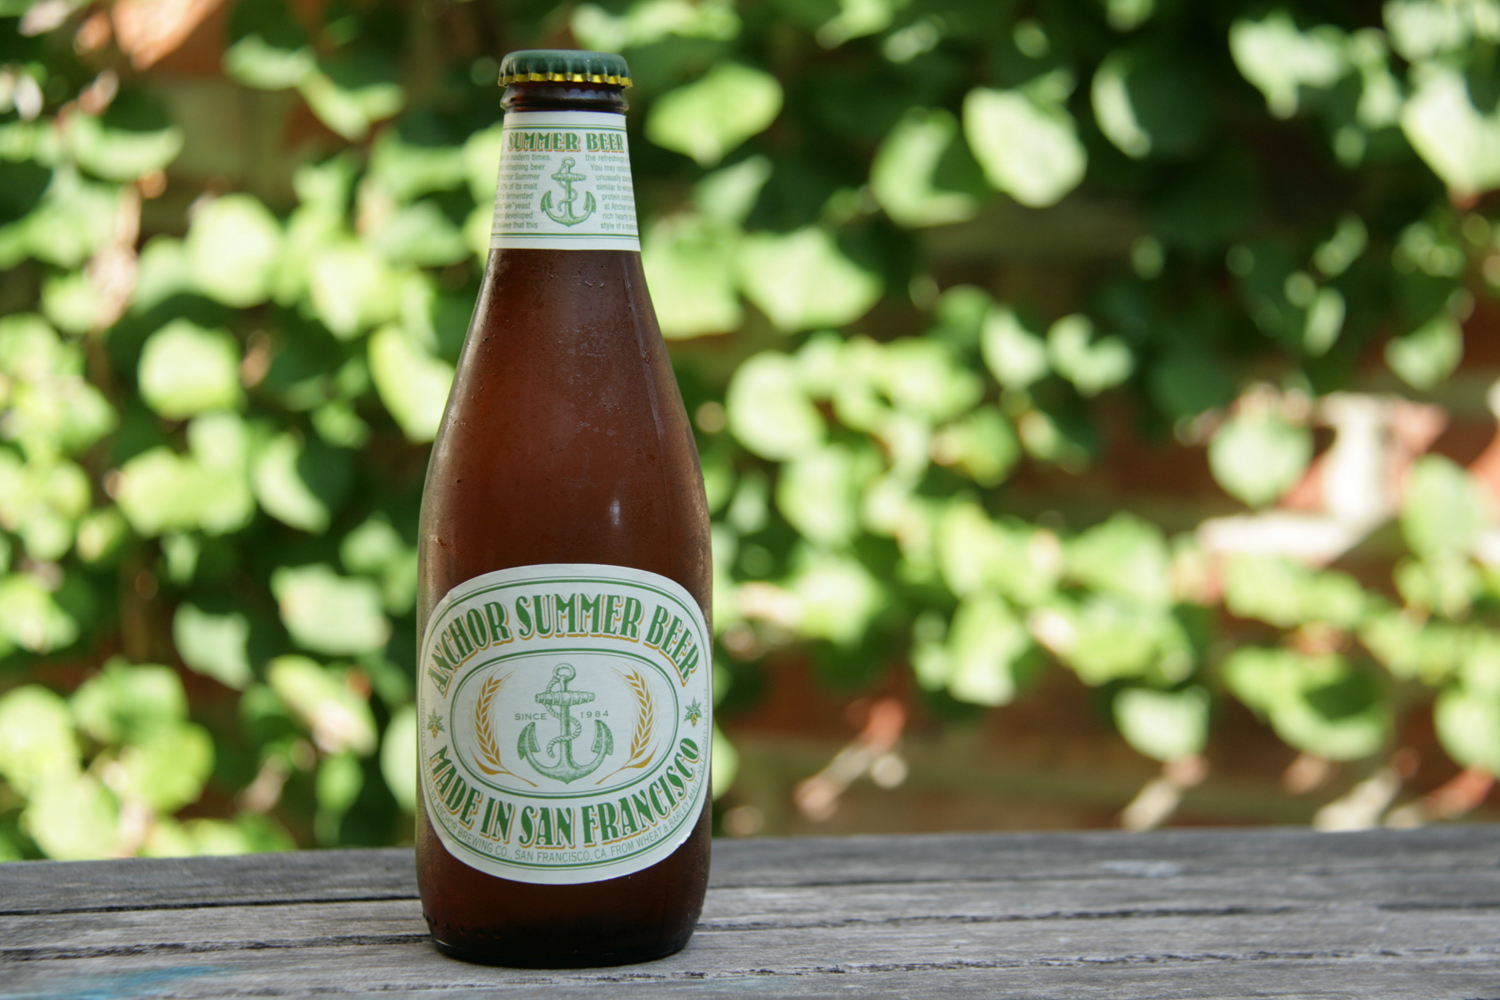 Anchor Summer Beer is a seasonal refresher from California.